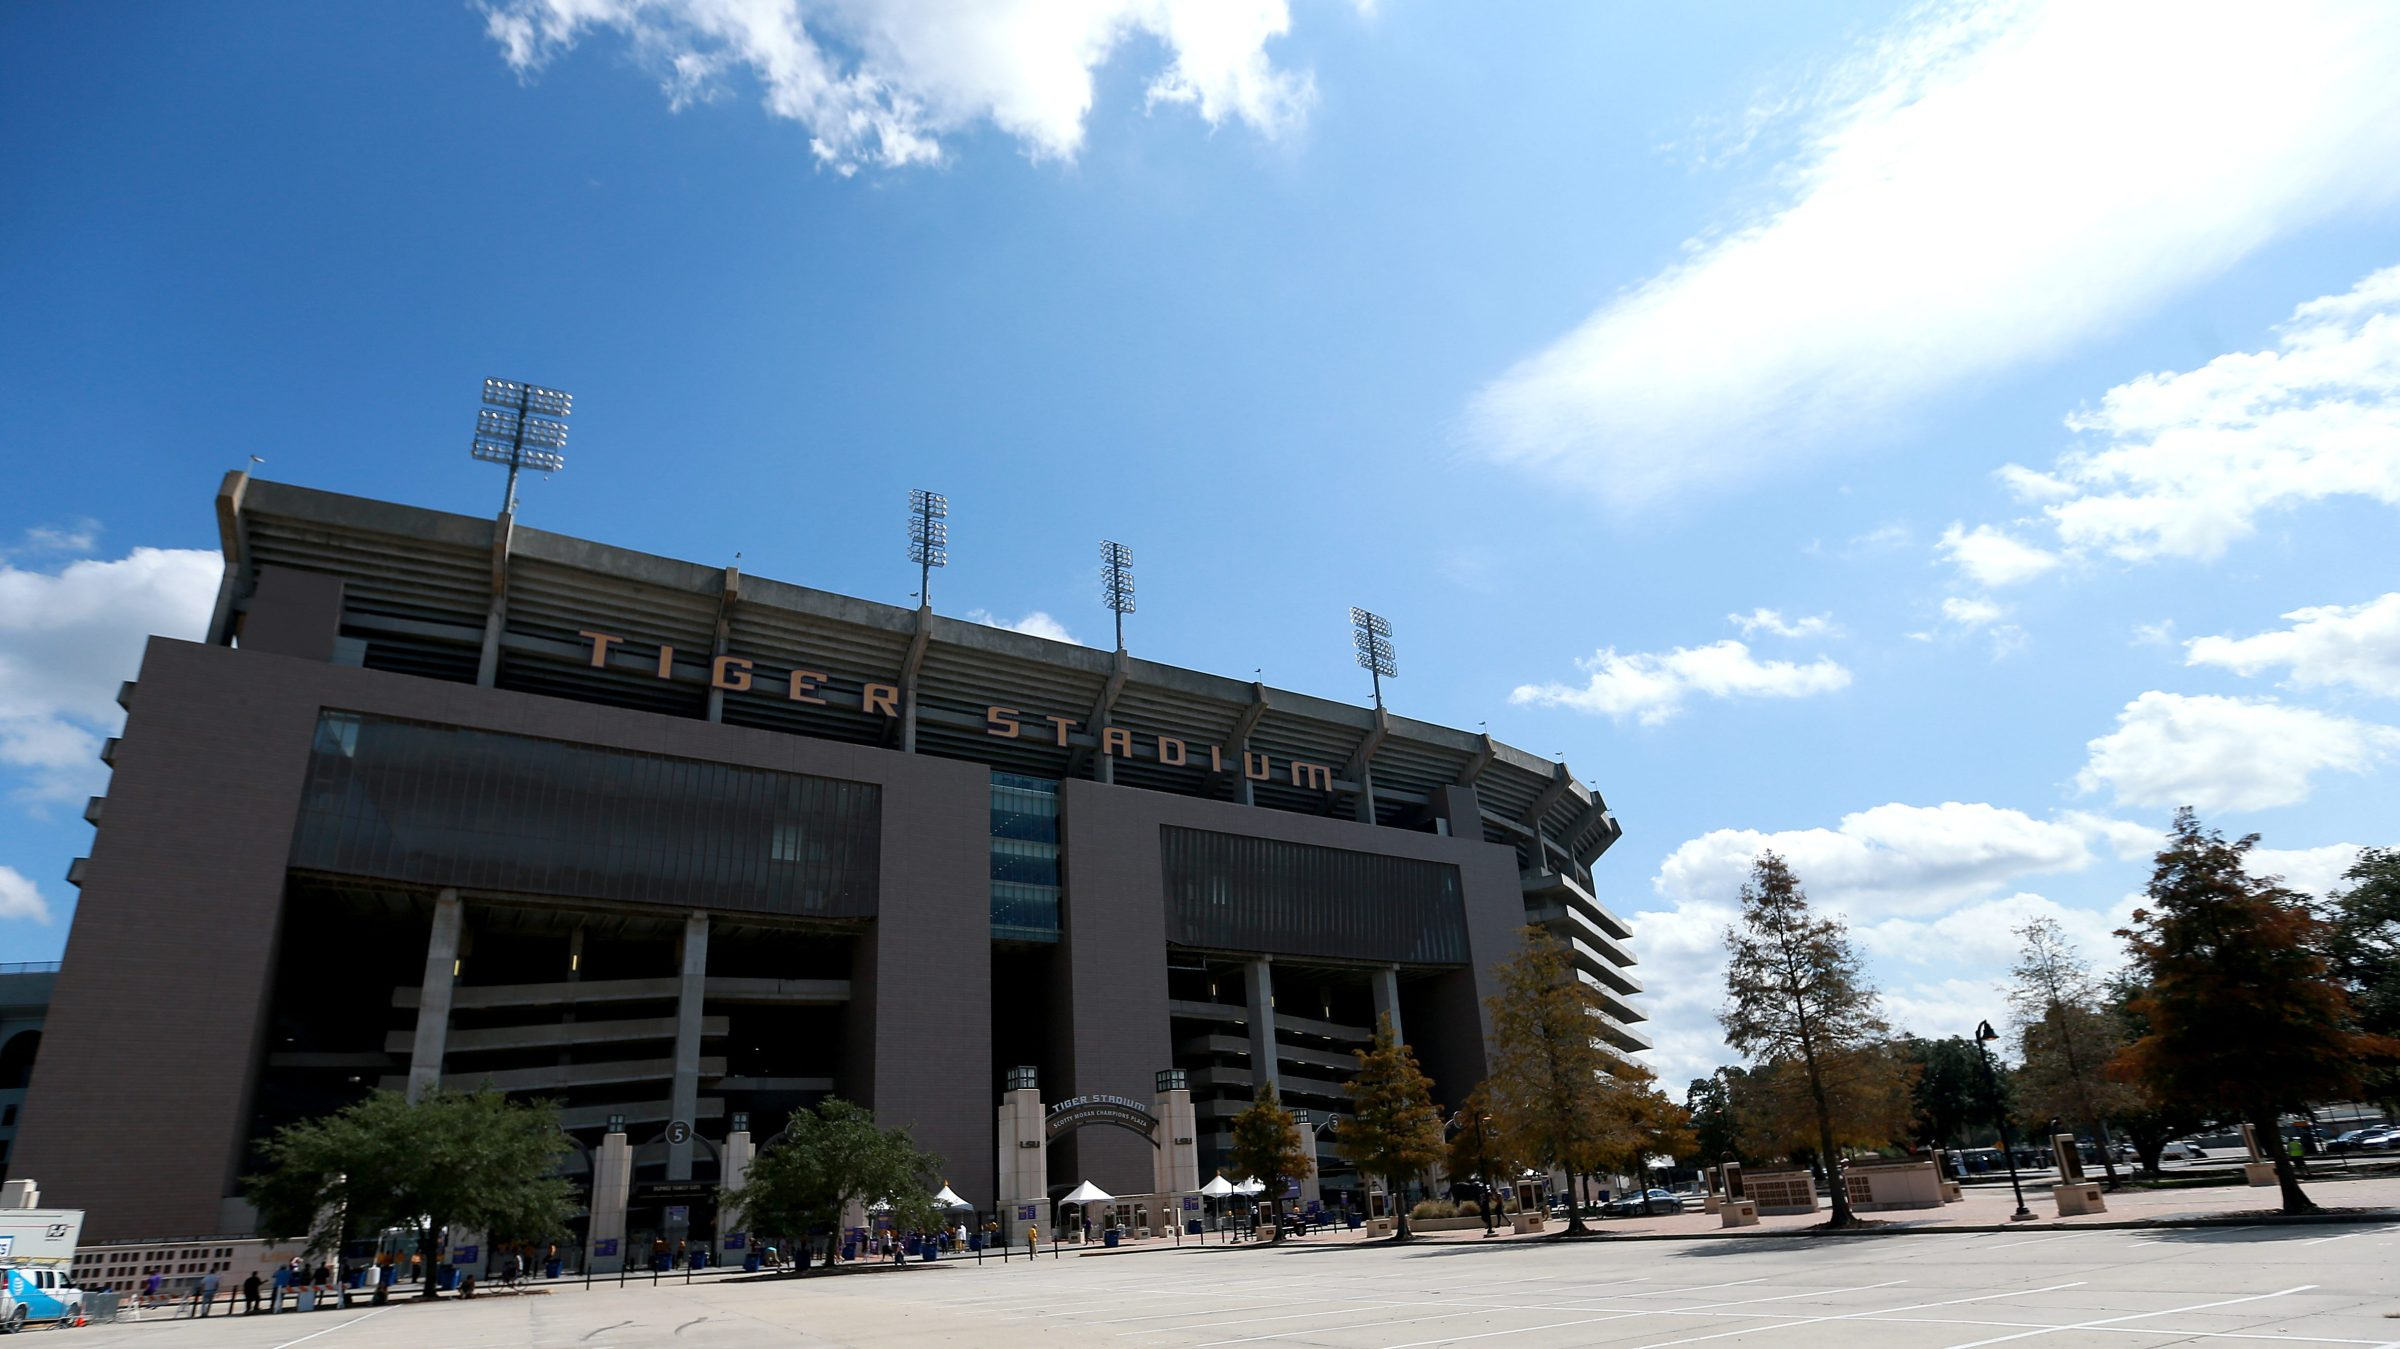 A general view of the exterior of Tiger Stadium.